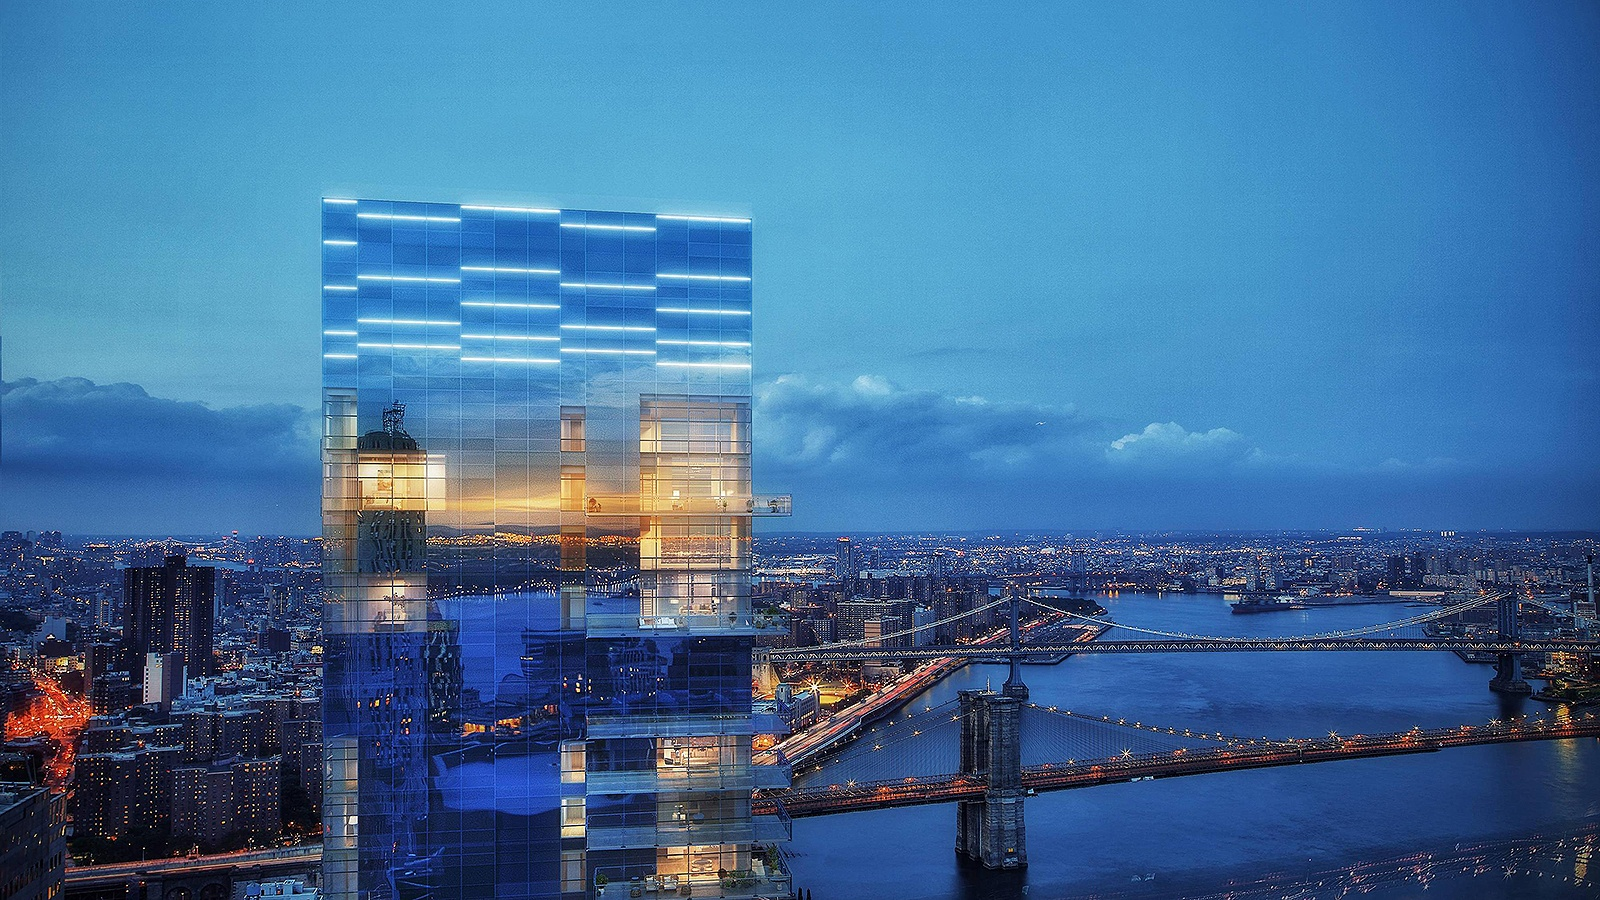 161 Maiden Lane, Seaport Residences, 1 Seaport